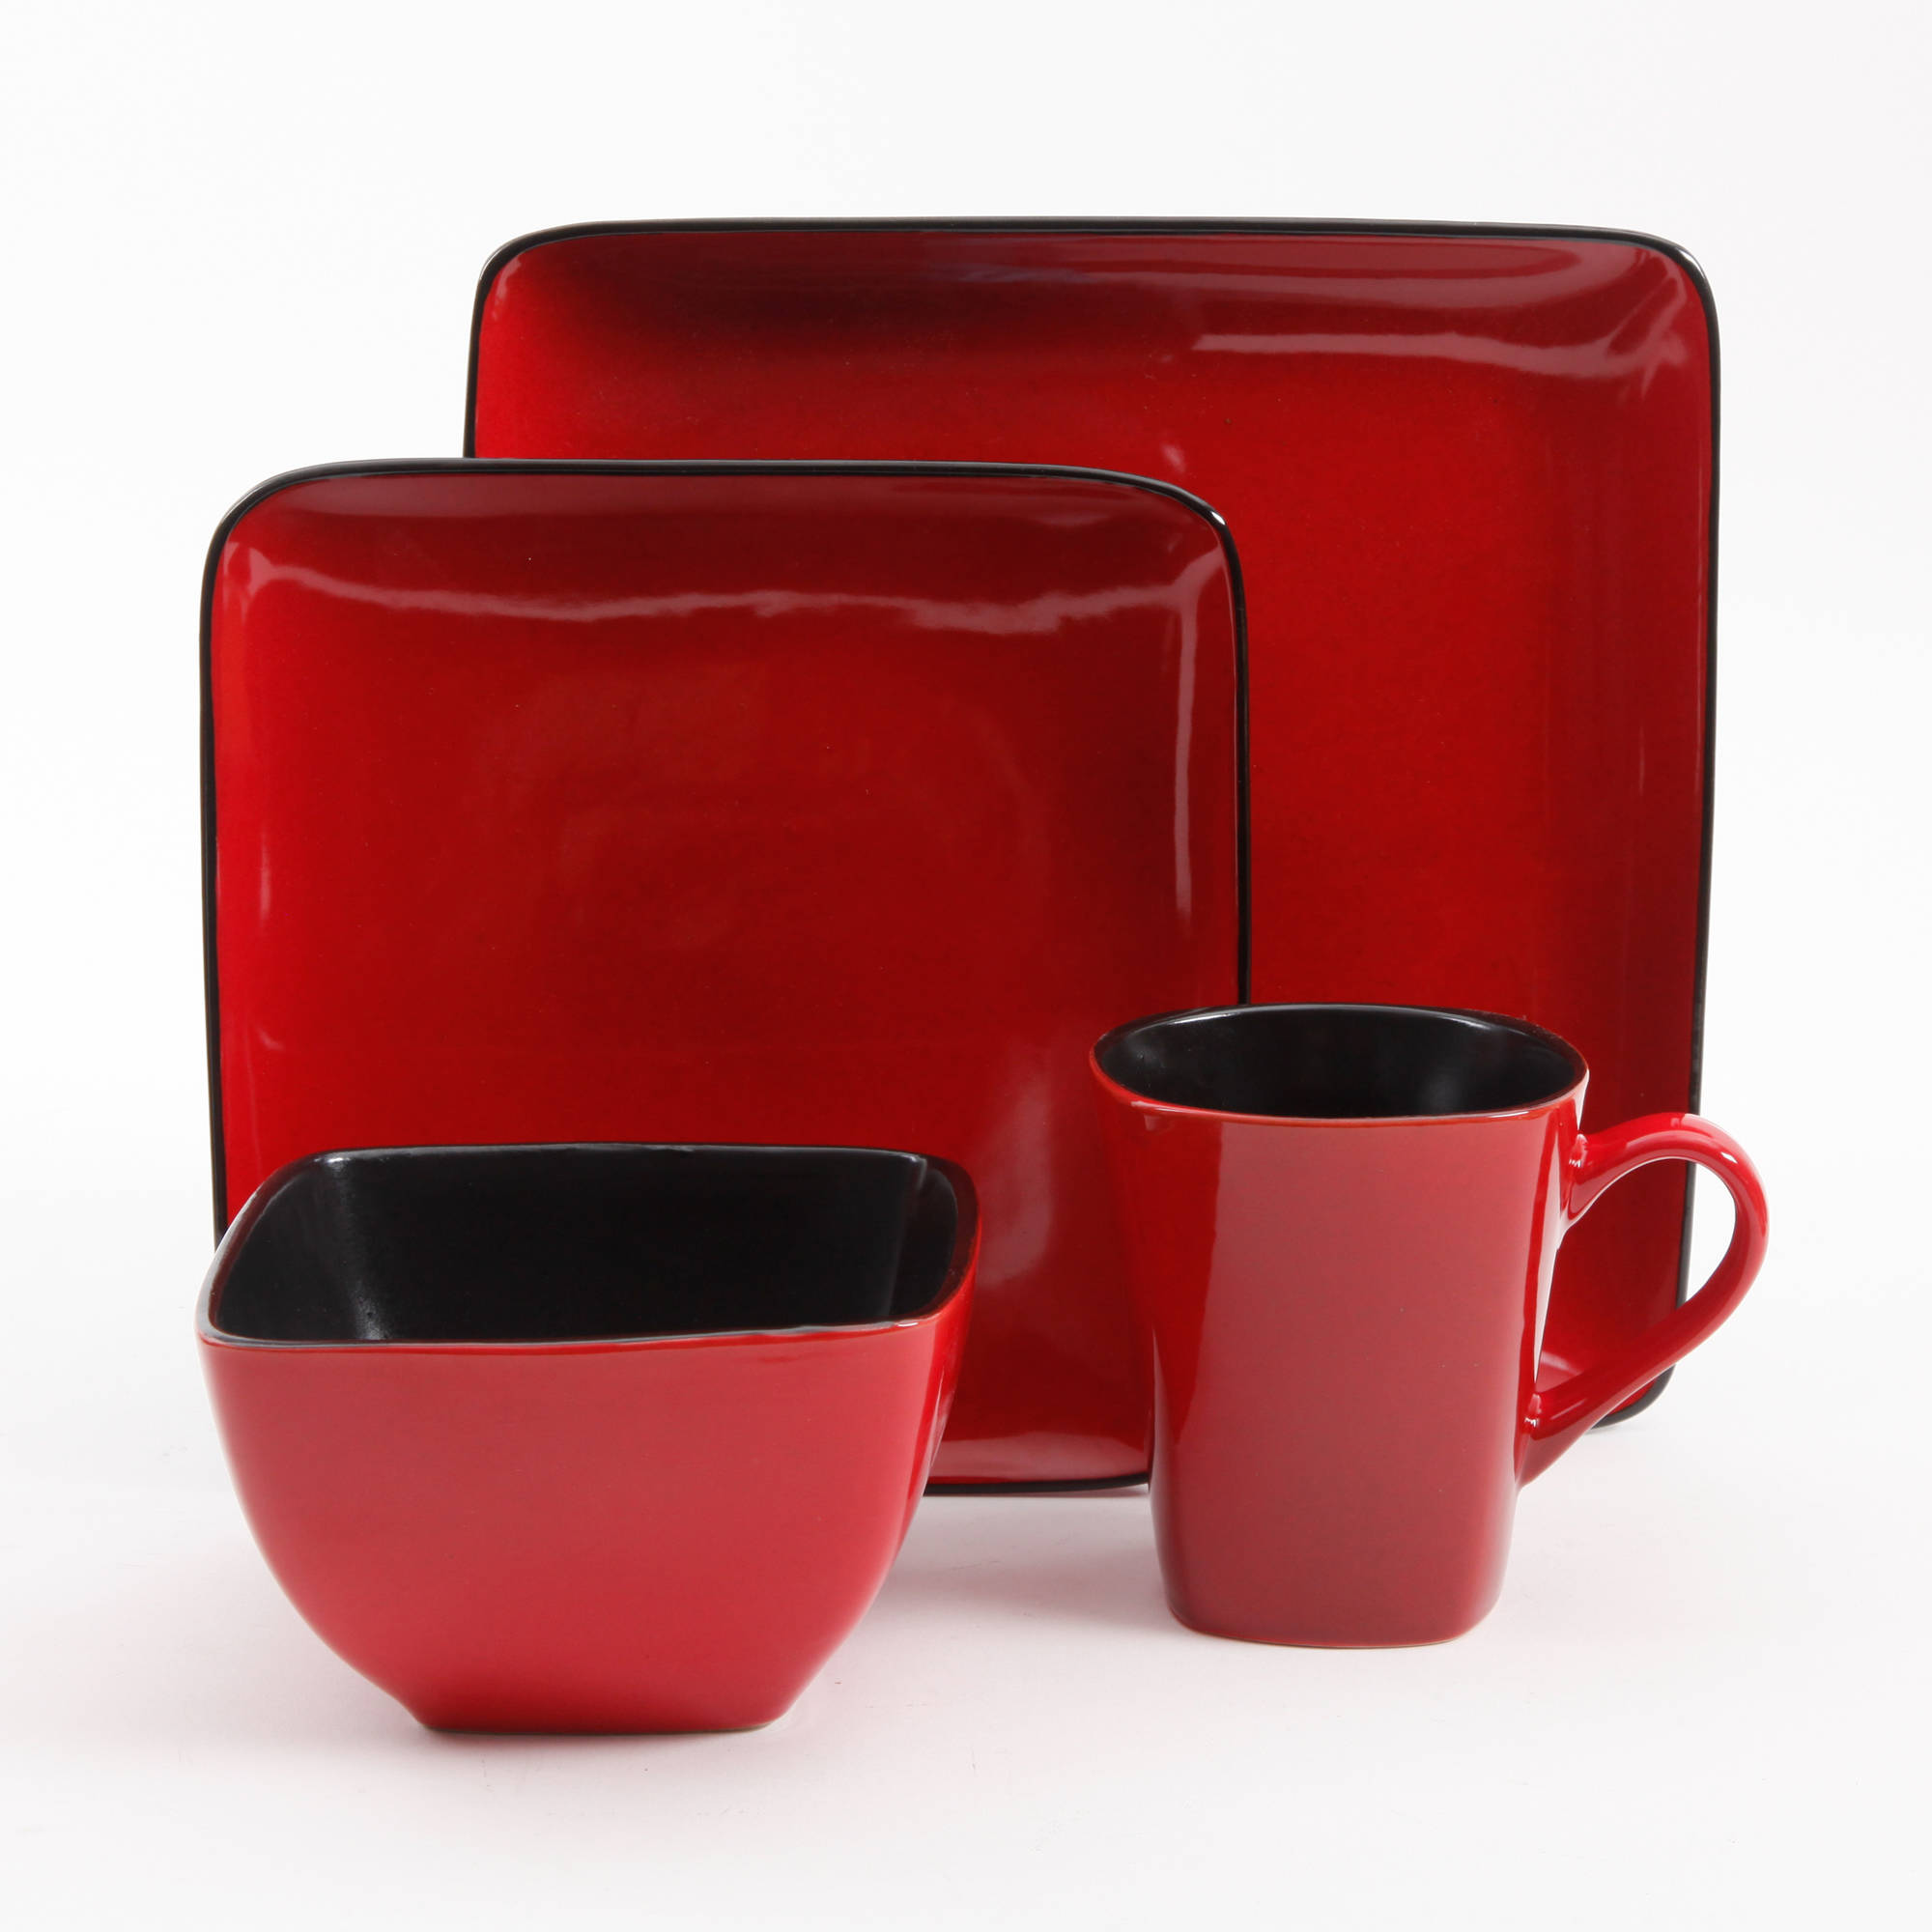 Better Homes and Gardens Rave 16-Piece Square Dinnerware Set Red  sc 1 st  eBay : square plate sets - pezcame.com